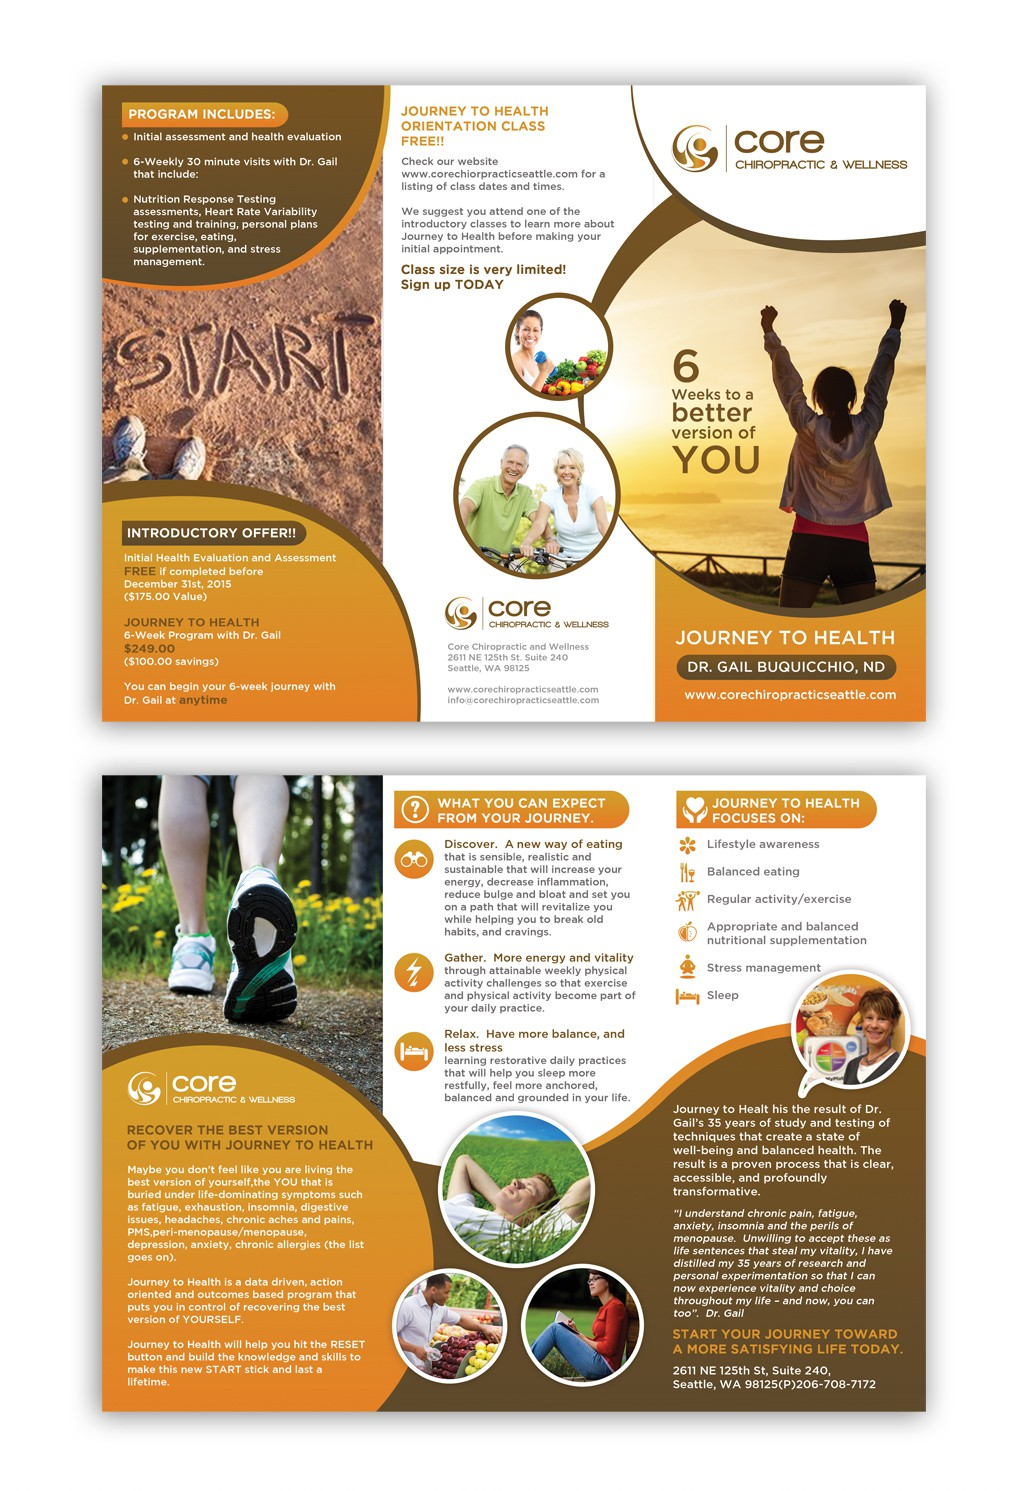 Create an inspiring brochure for people who want to improve their health and well-being.